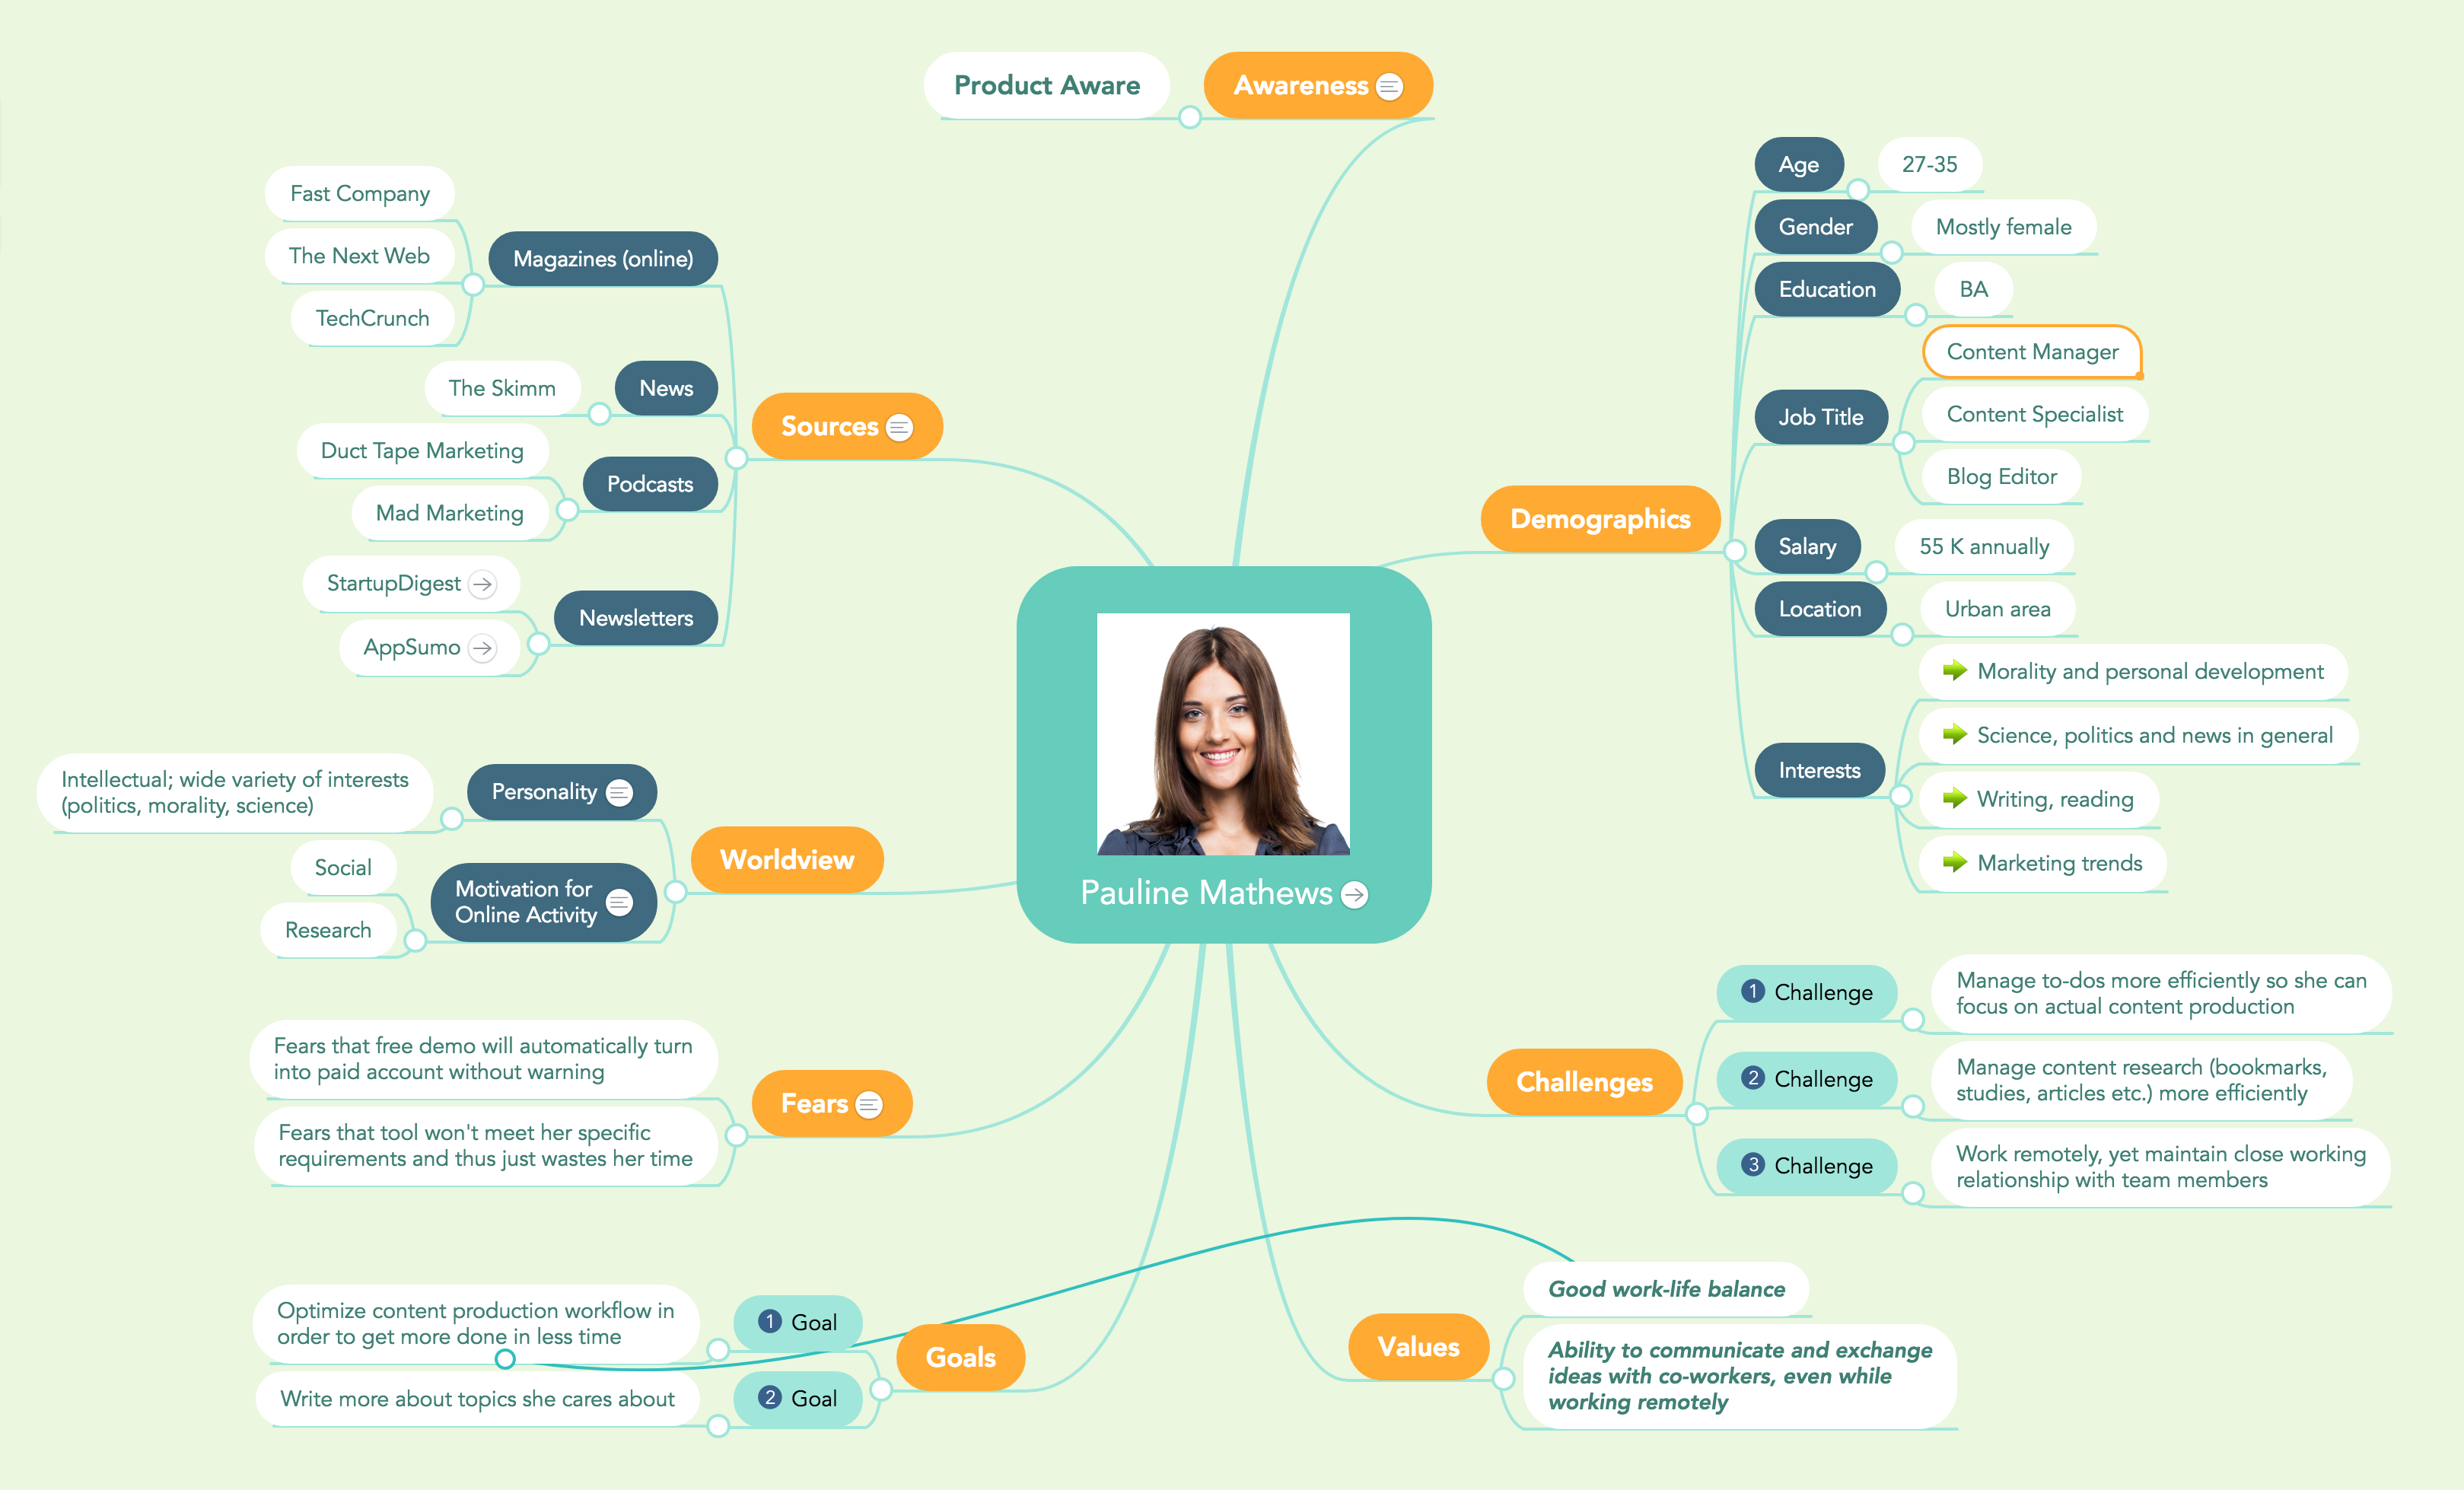 Marketing persona mind map marketing mind maps pinterest marketing persona mind map malvernweather Image collections